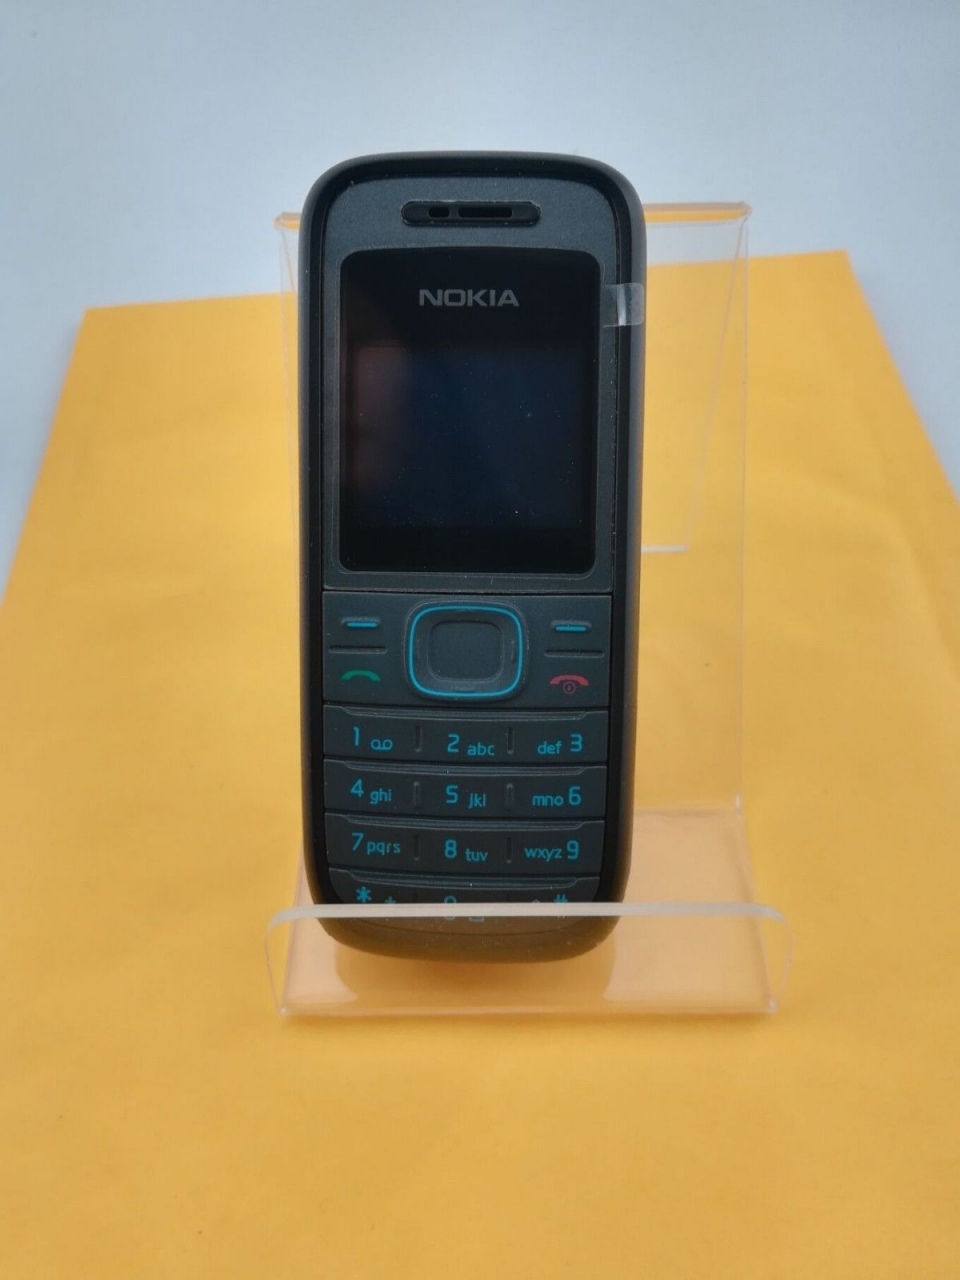 Refurbished phone Original Cellular Nokia 1208 Cheap phones GSM unlocked phone red 15